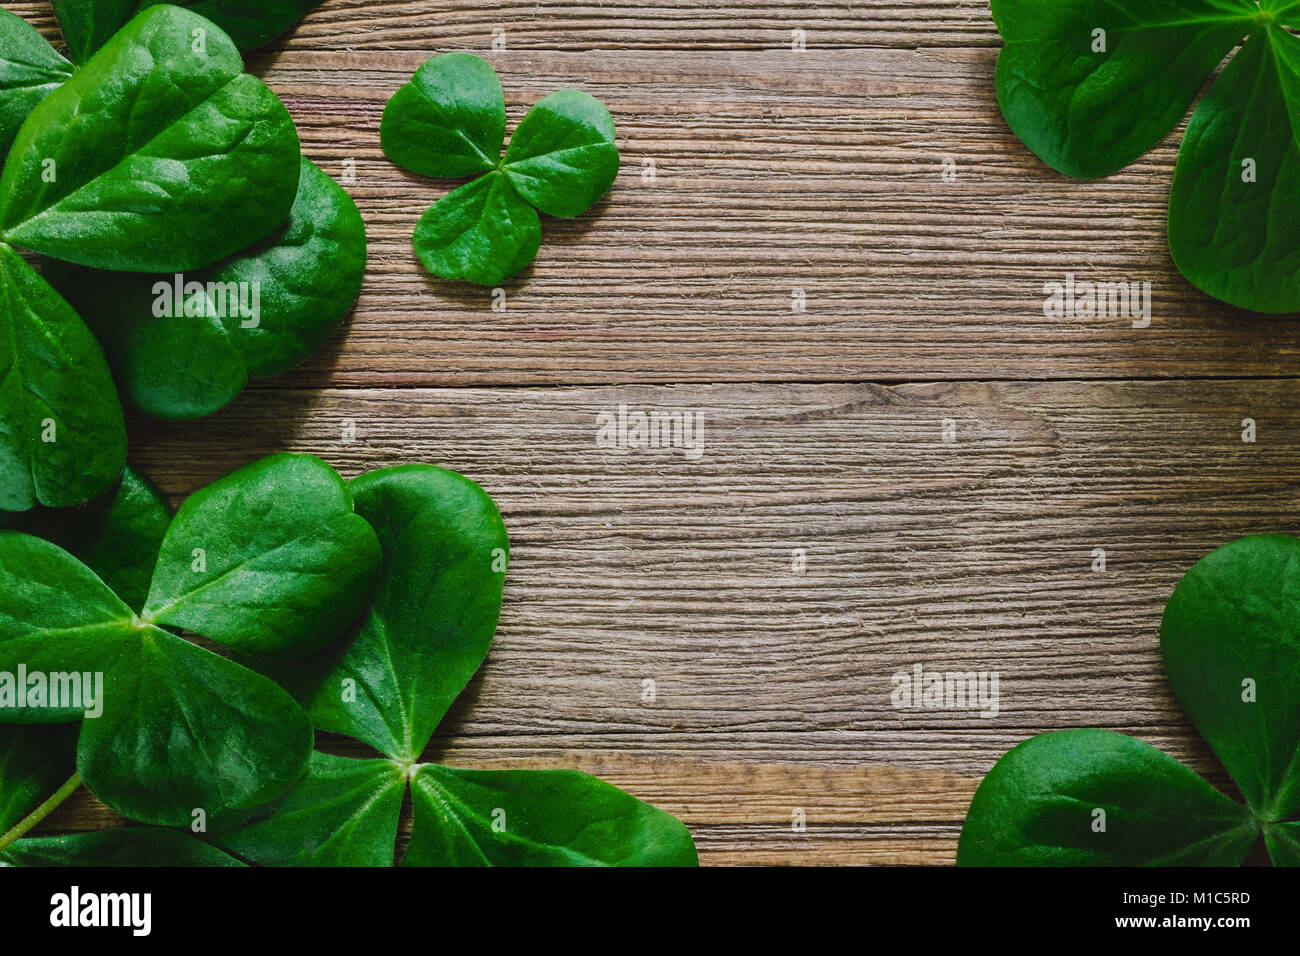 Shamrocks Arranged on Rustic Wooden Table with Room for Copy - Stock Image